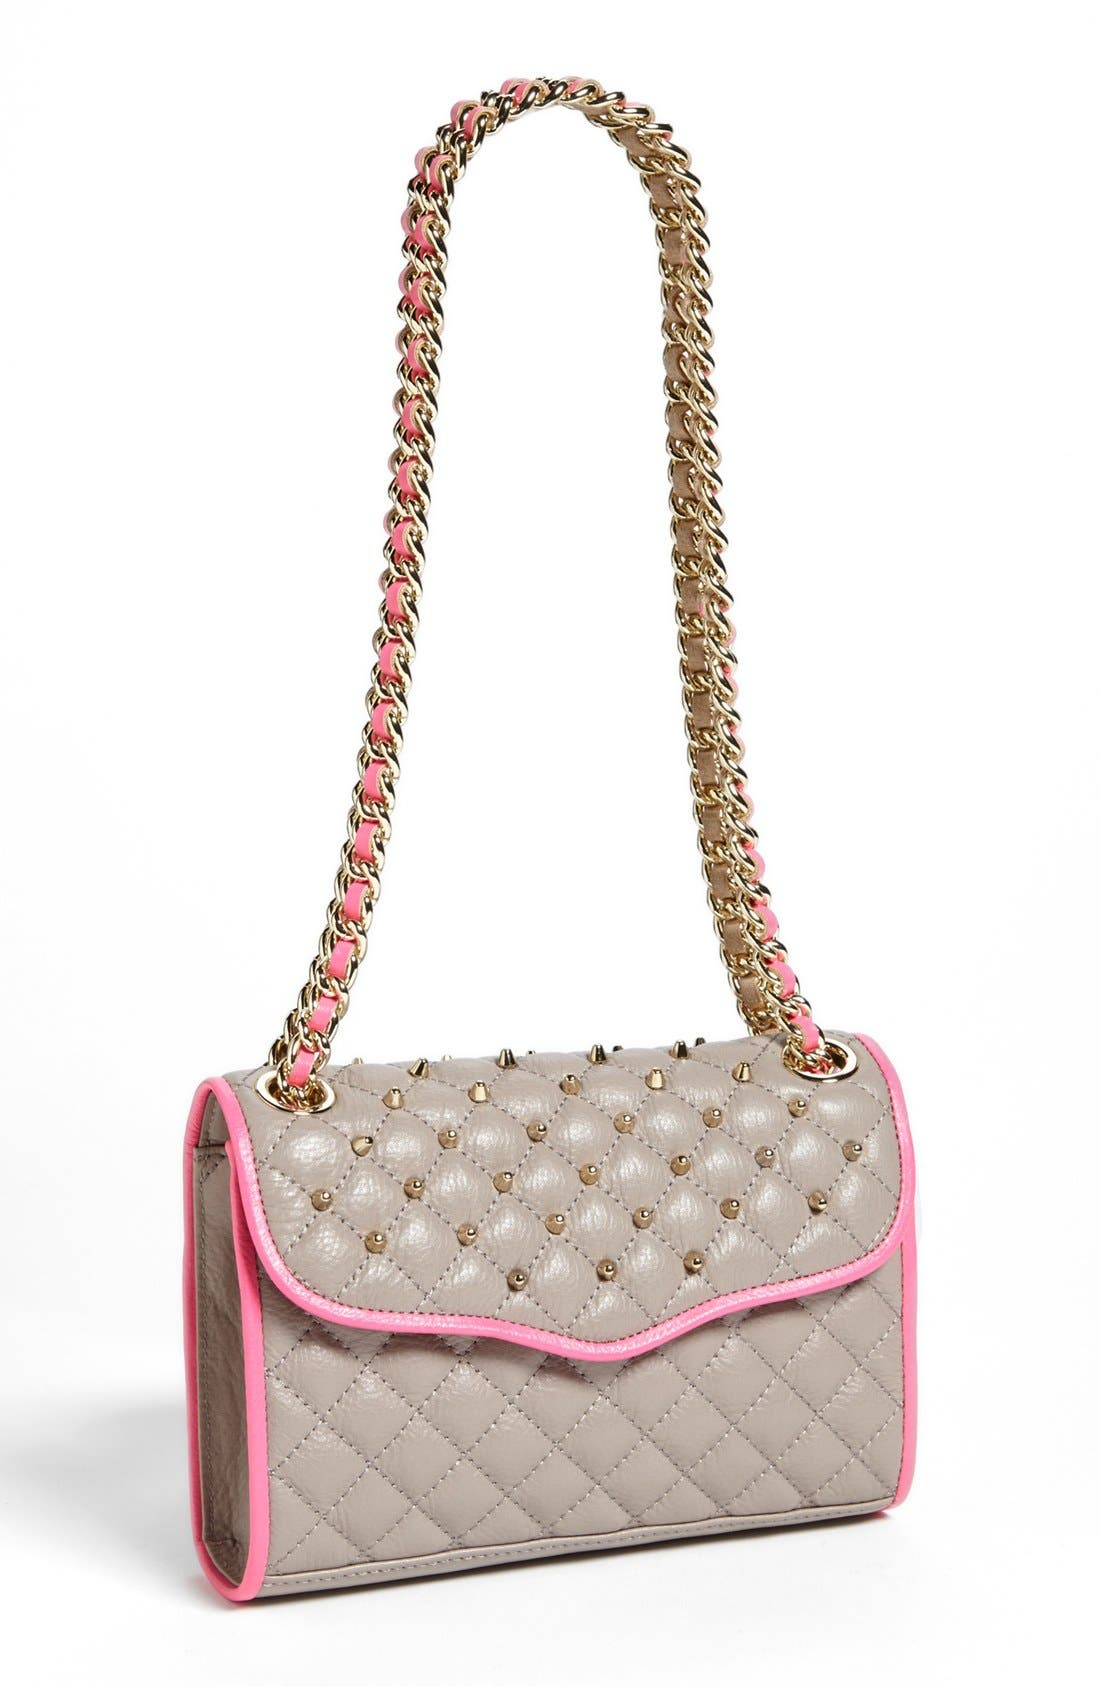 Main Image - Rebecca Minkoff 'Affair - Mini Studded' Convertible Crossbody Bag